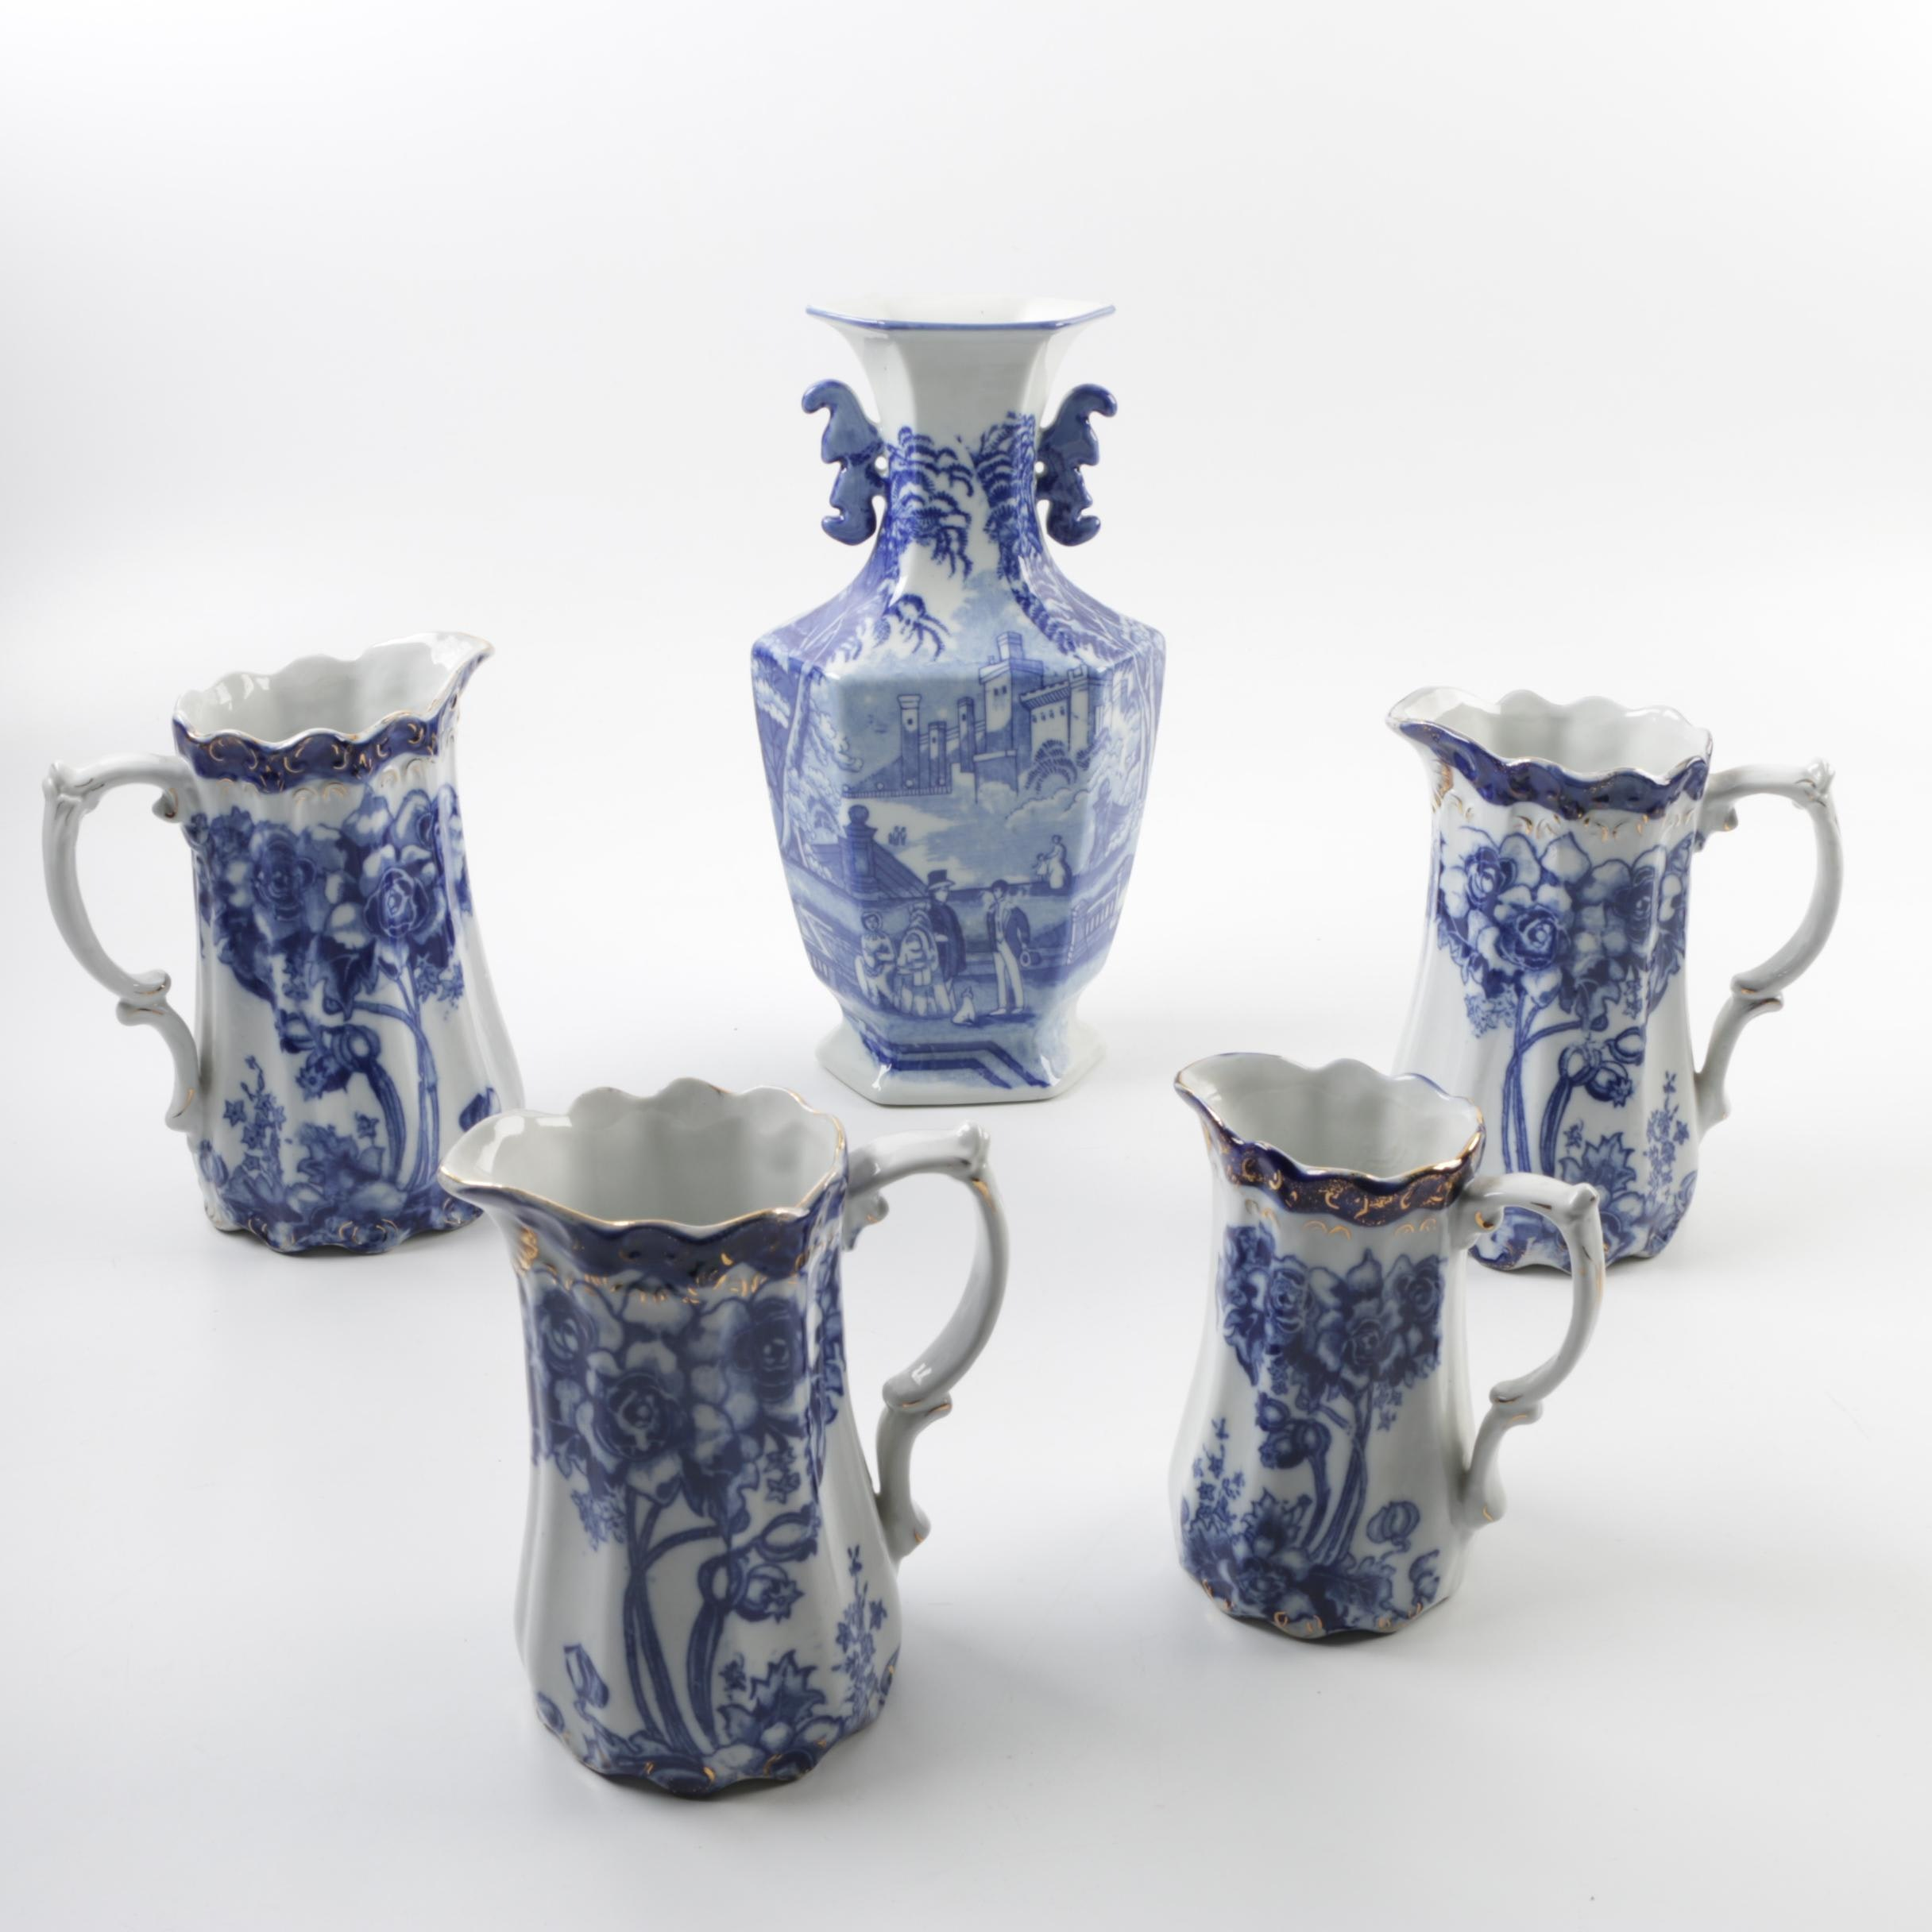 Victoria Ironstone Flow Blue Pitchers and Urn